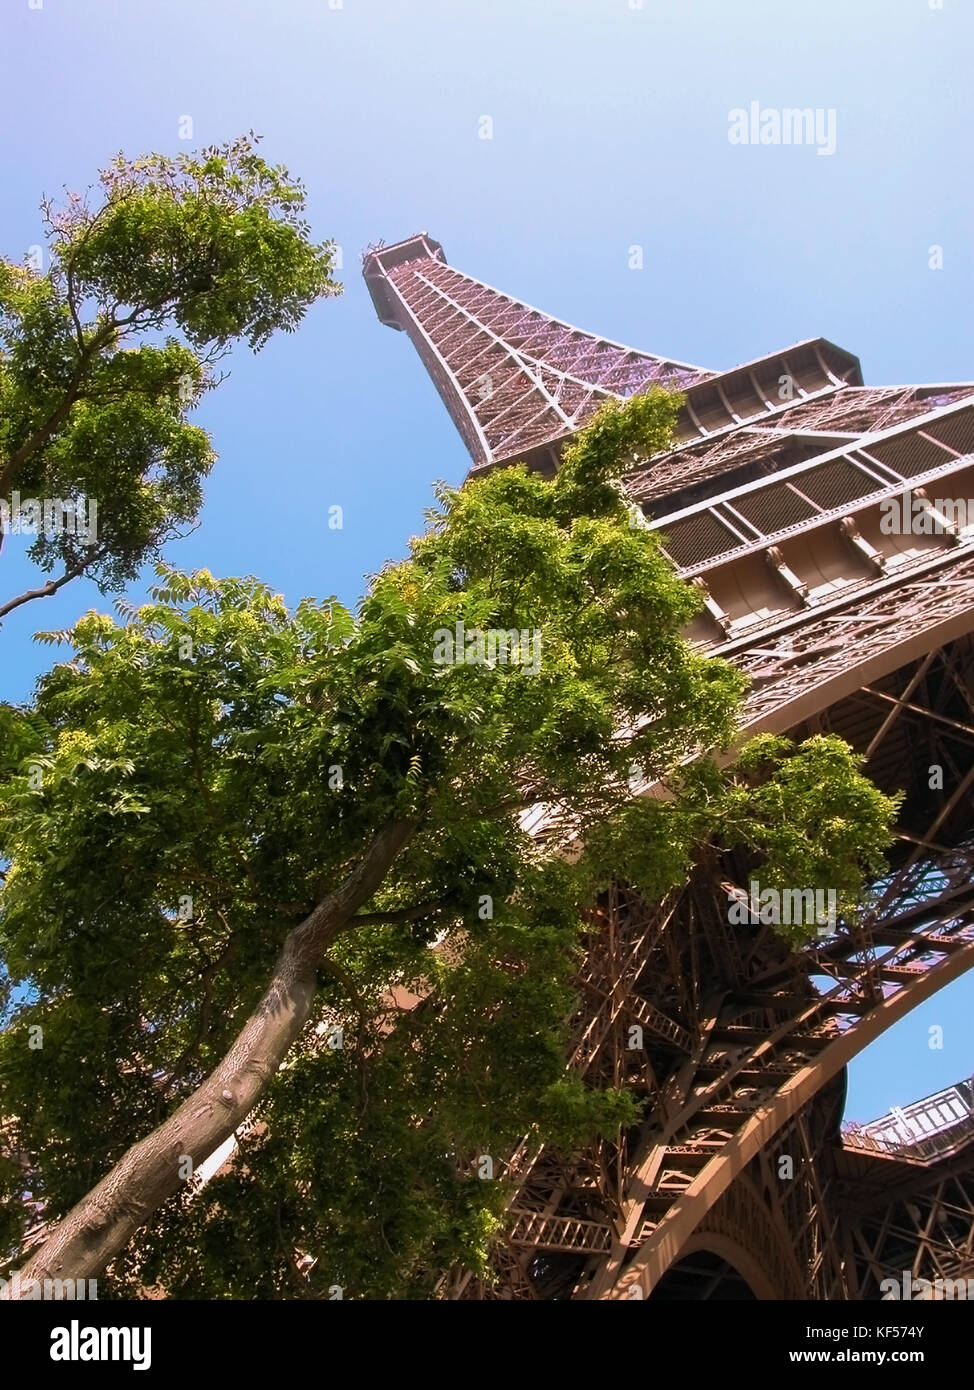 The Eiffel Tower from Quai Branly, Paris, France Stock Photo